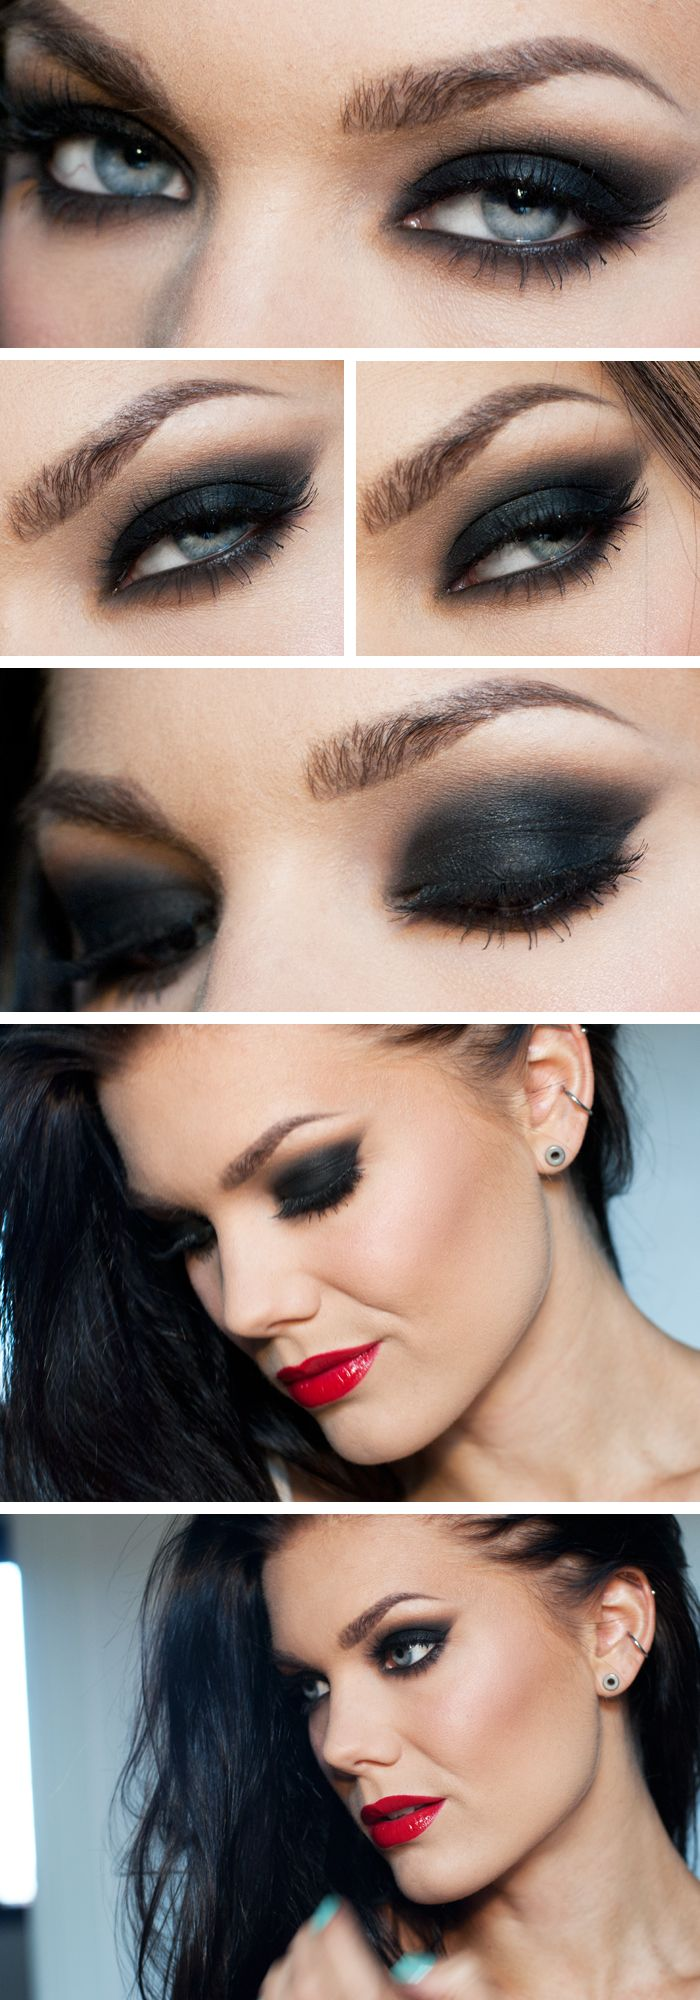 "Today's Look: ""The Smokey Eye"" -Linda Hallberg Nobody does a smokey eye like Linda Hallberg, in my humble opinion... gorgeous! 03/30/13"